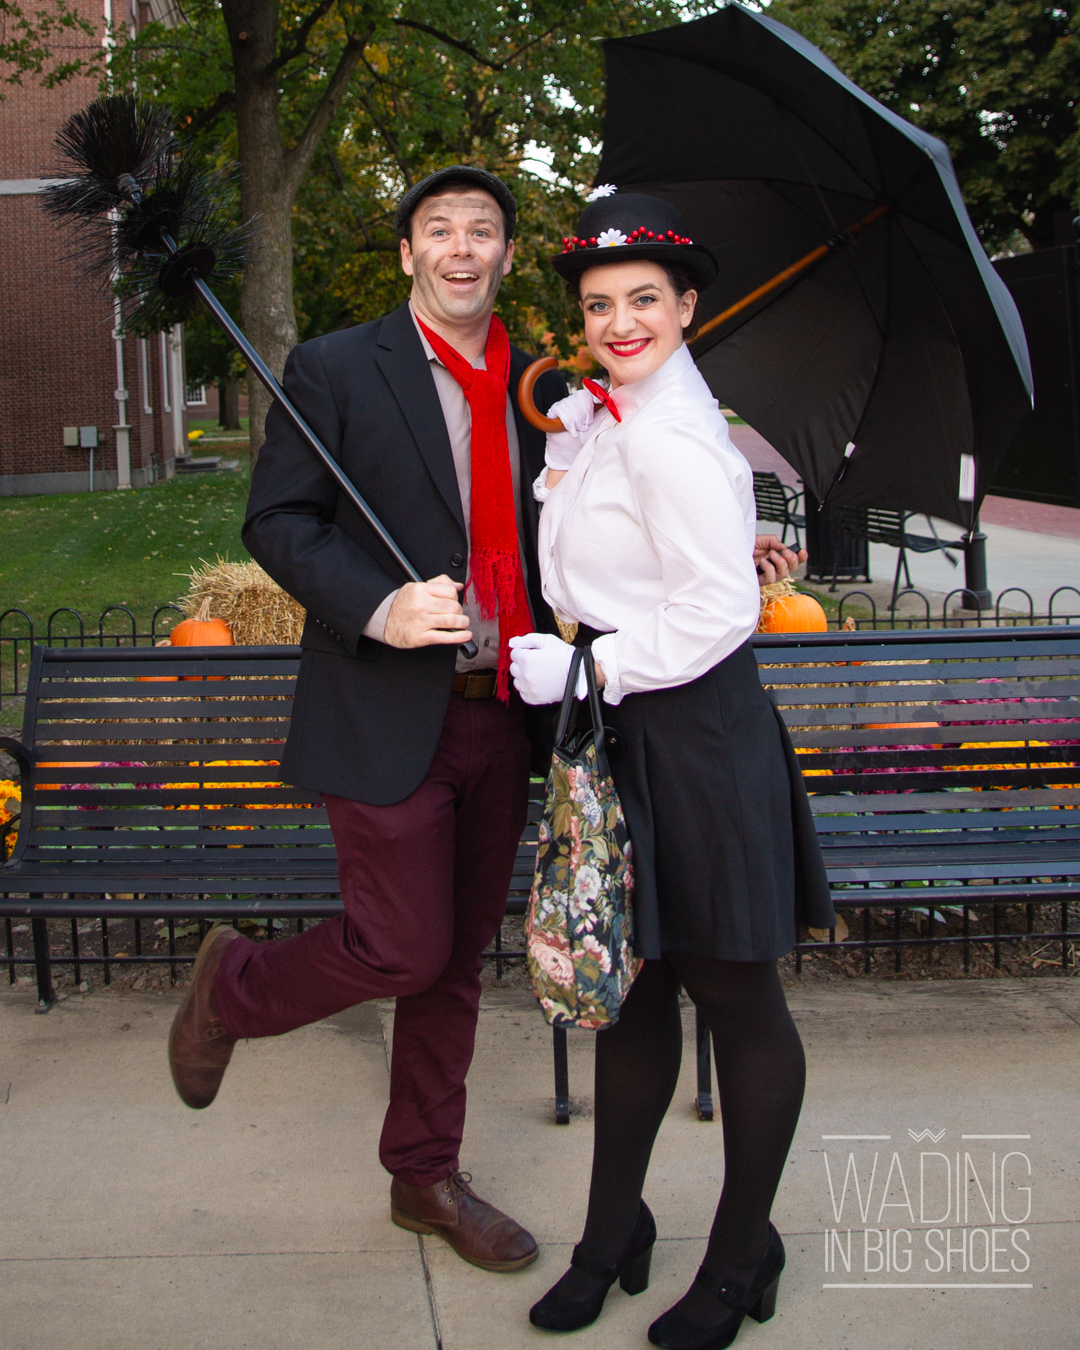 Wading in Big Shoes - Hallowe'en in Greenfield Village, 2020 Edition: A Reimagined Celebration